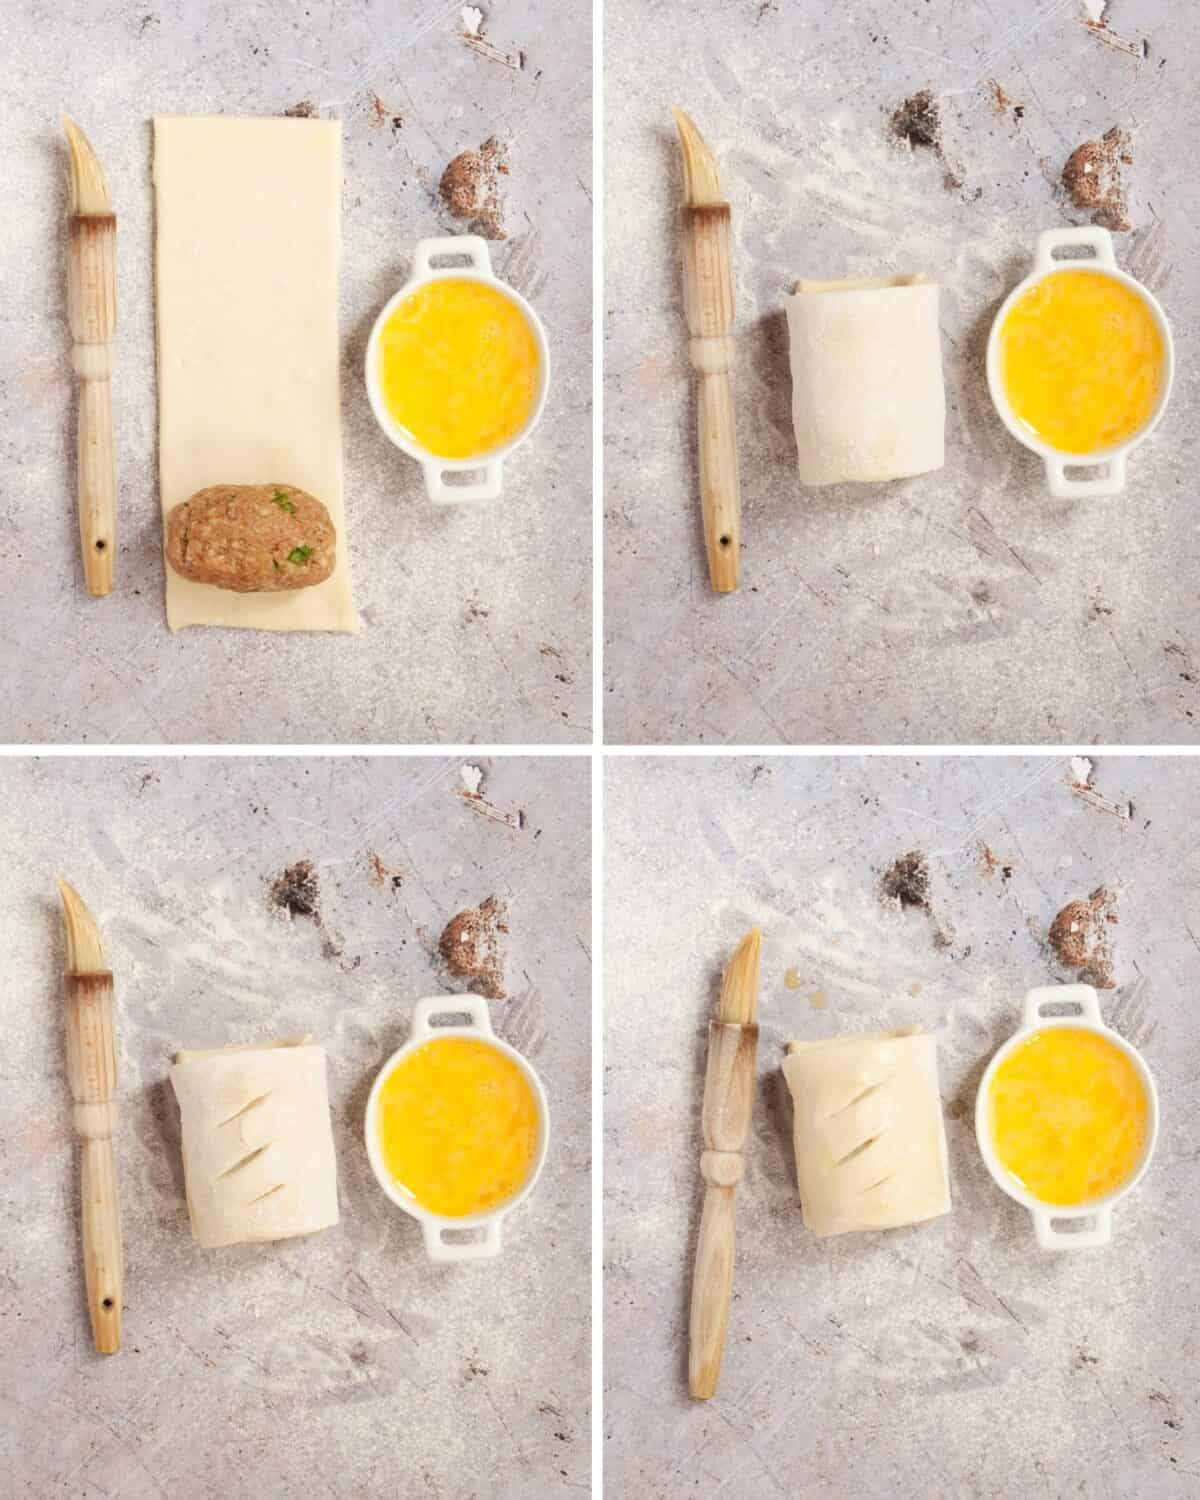 Step by step images for making lamb pastry rolls.